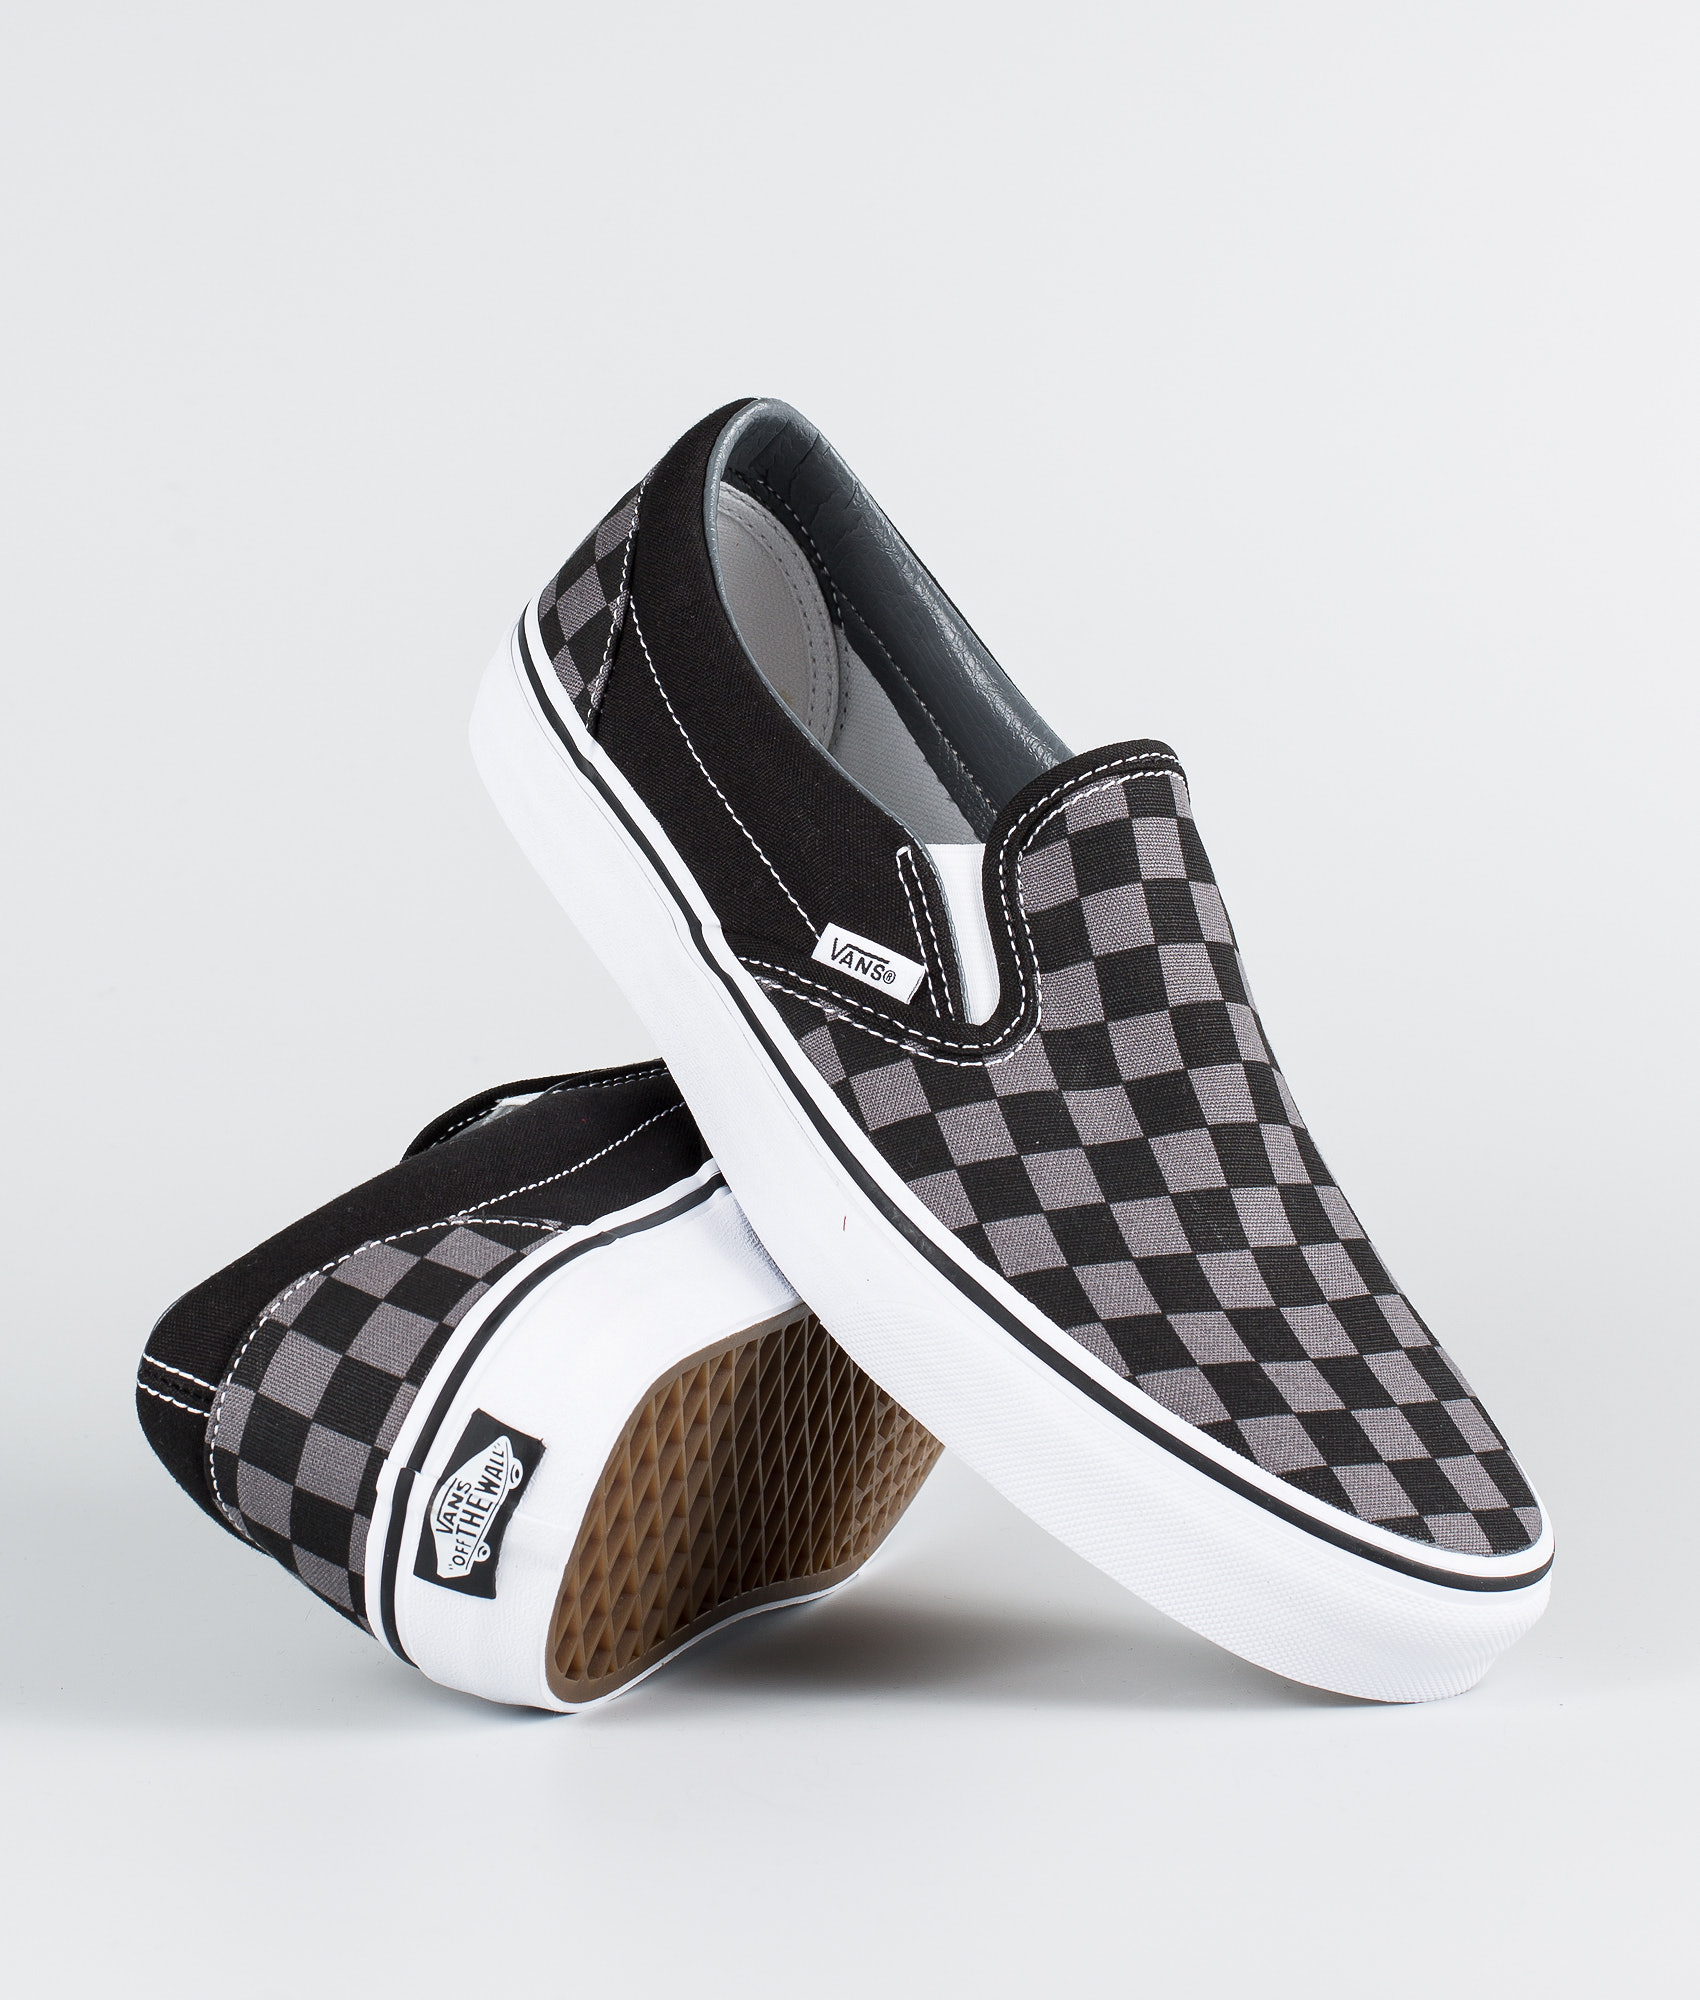 0ef9cfcd80 Vans Classic Slip-On Shoes Black/Pewter Checkerboard